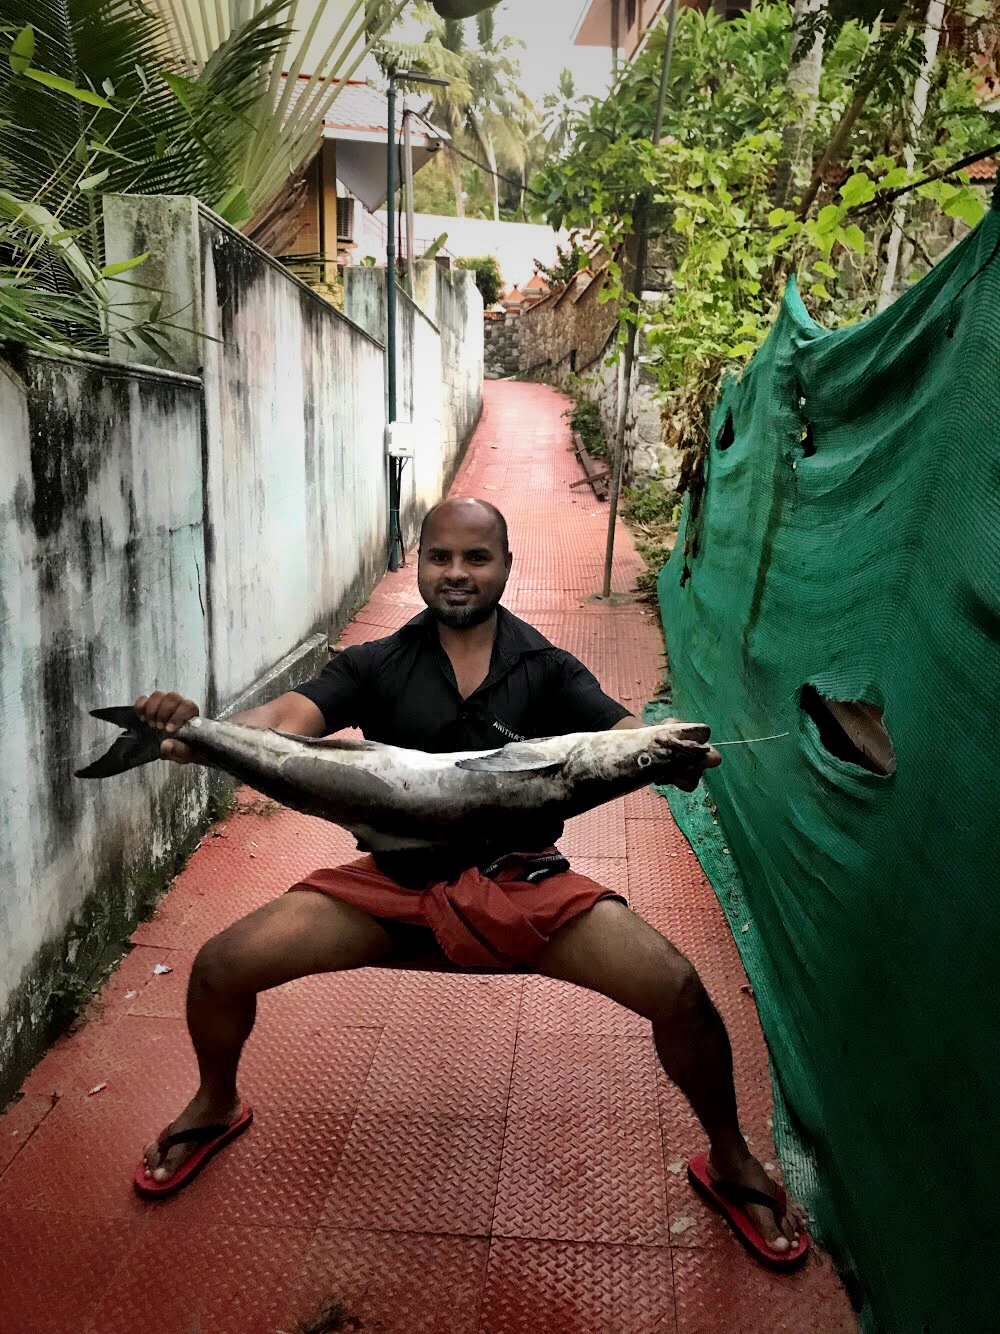 A strange encounter in the walled labyrinthine sidewalks in Kovalam